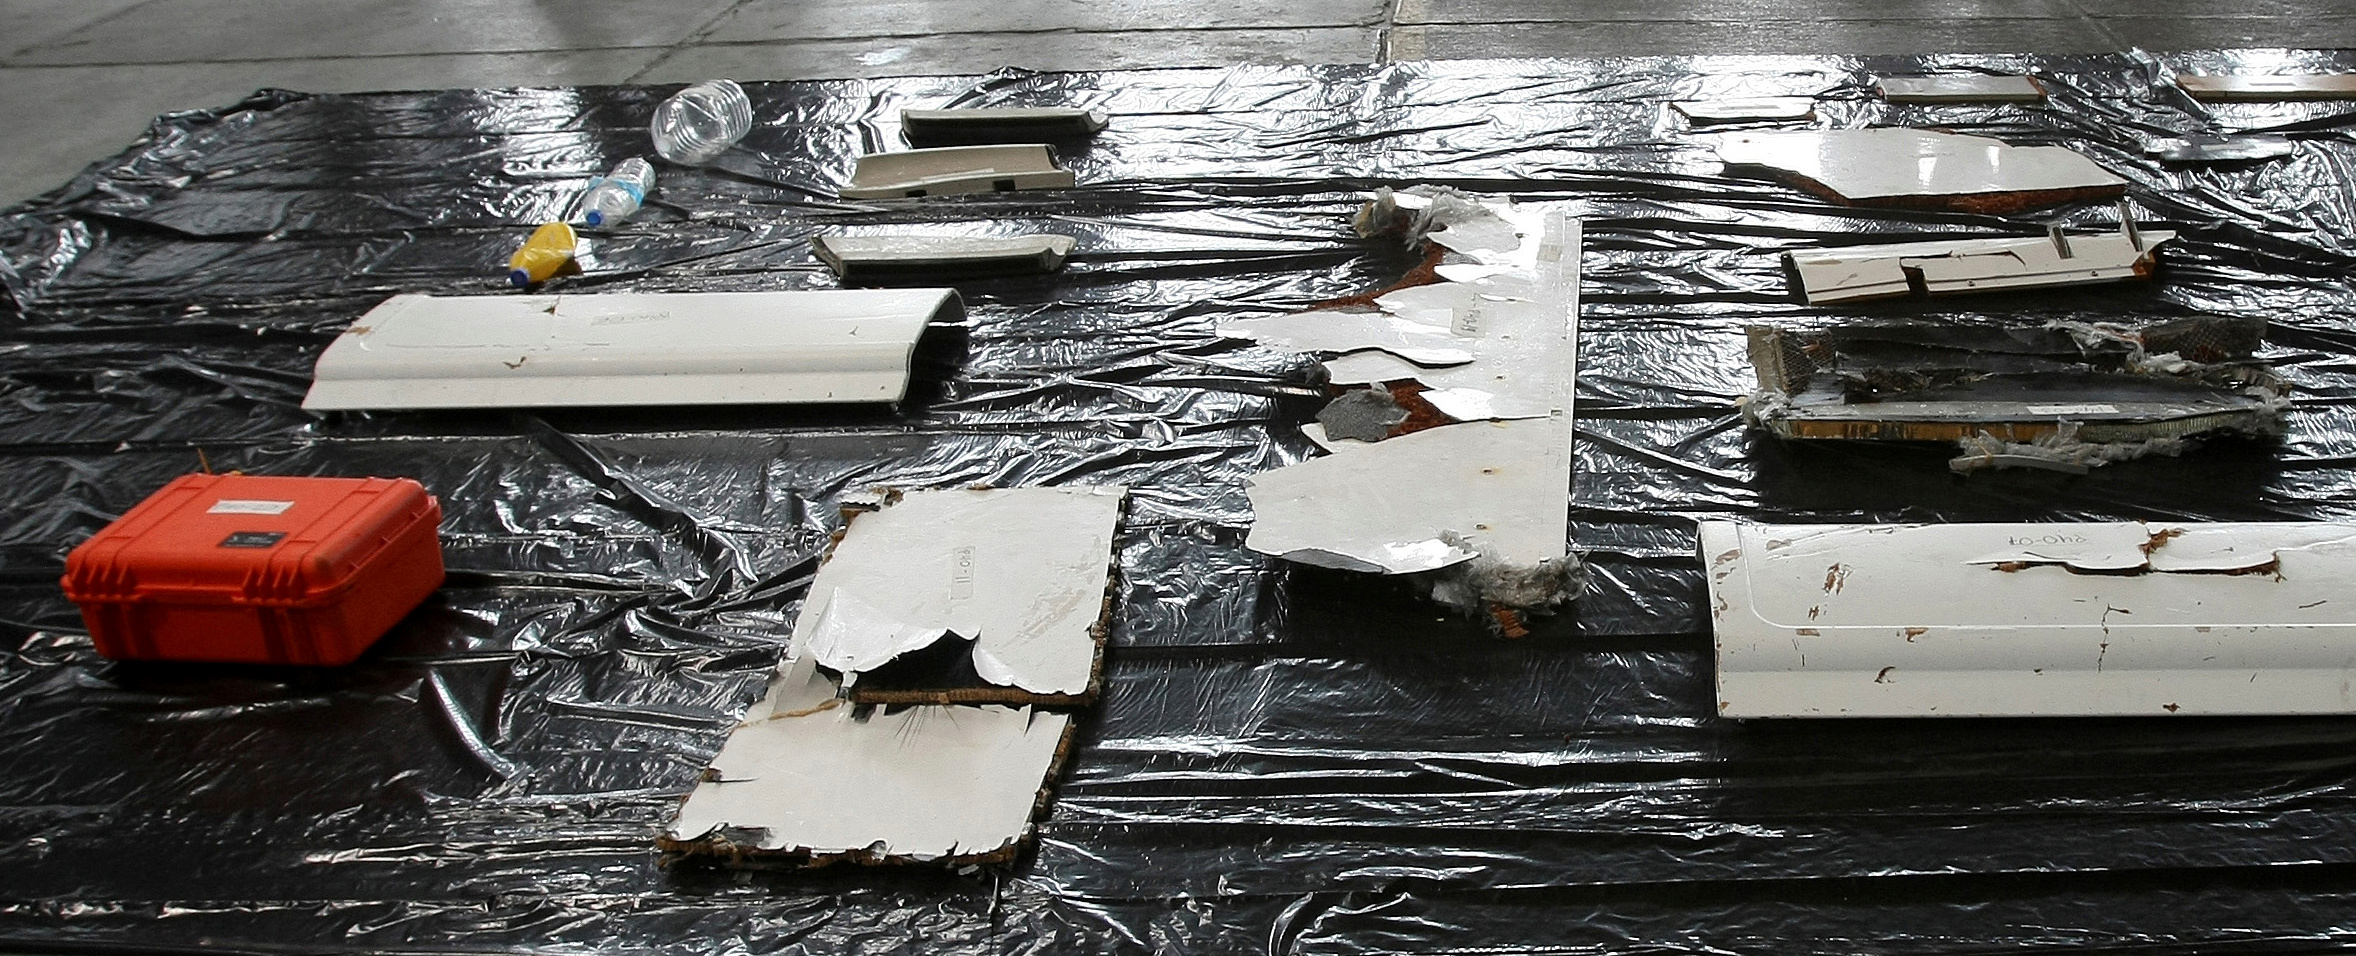 FILE PHOTO: Debris from the missing Air France flight 447 is seen at the Air Force base in Recife June 12, 2009.  REUTERS/Stringer/File Photo